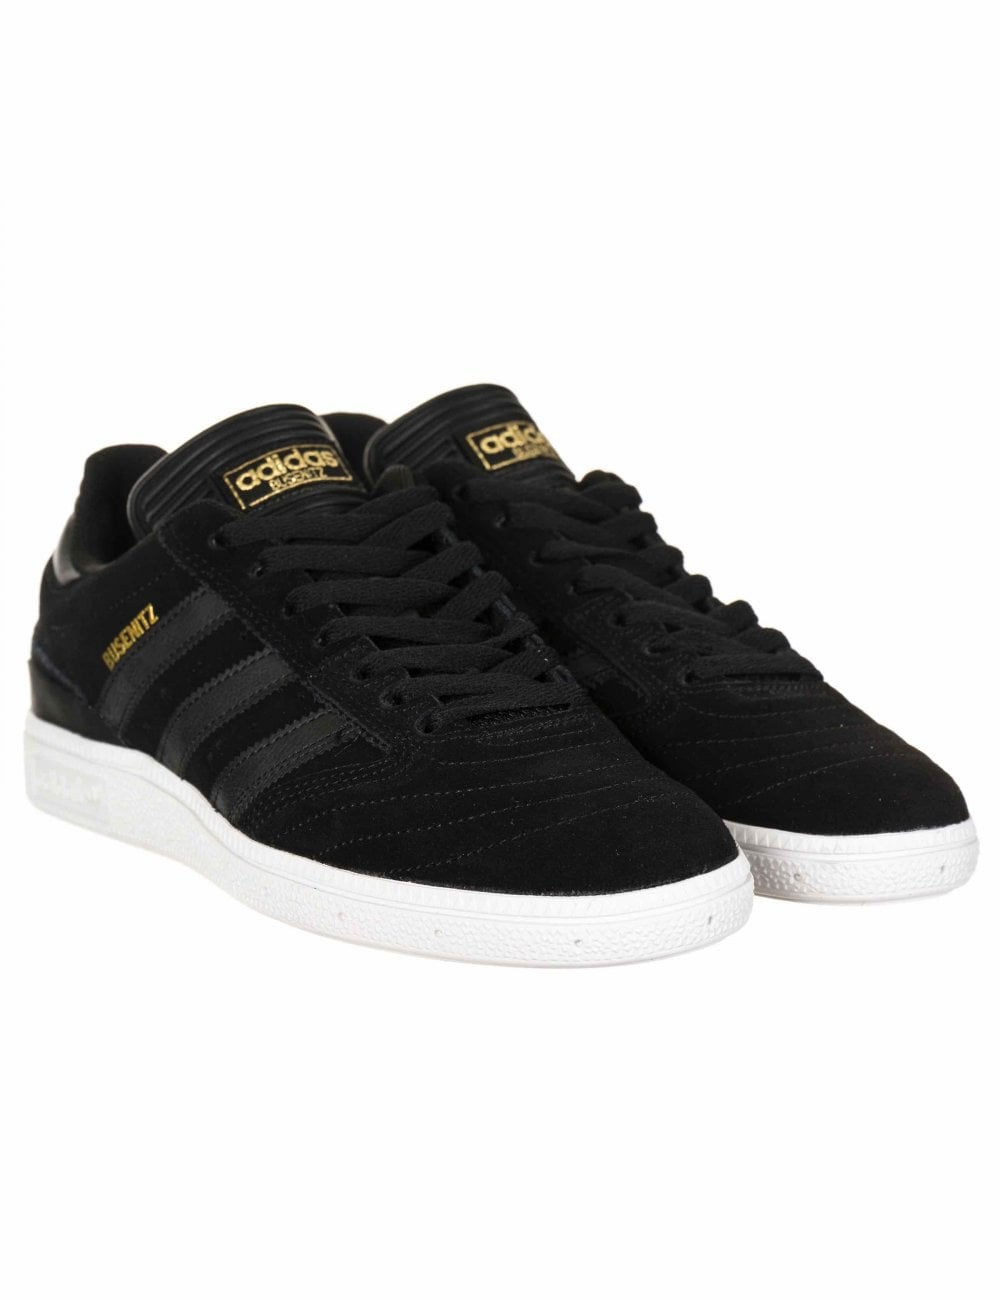 timeless design 029d5 b81a4 Busenitz Pro Trainers - Core Black